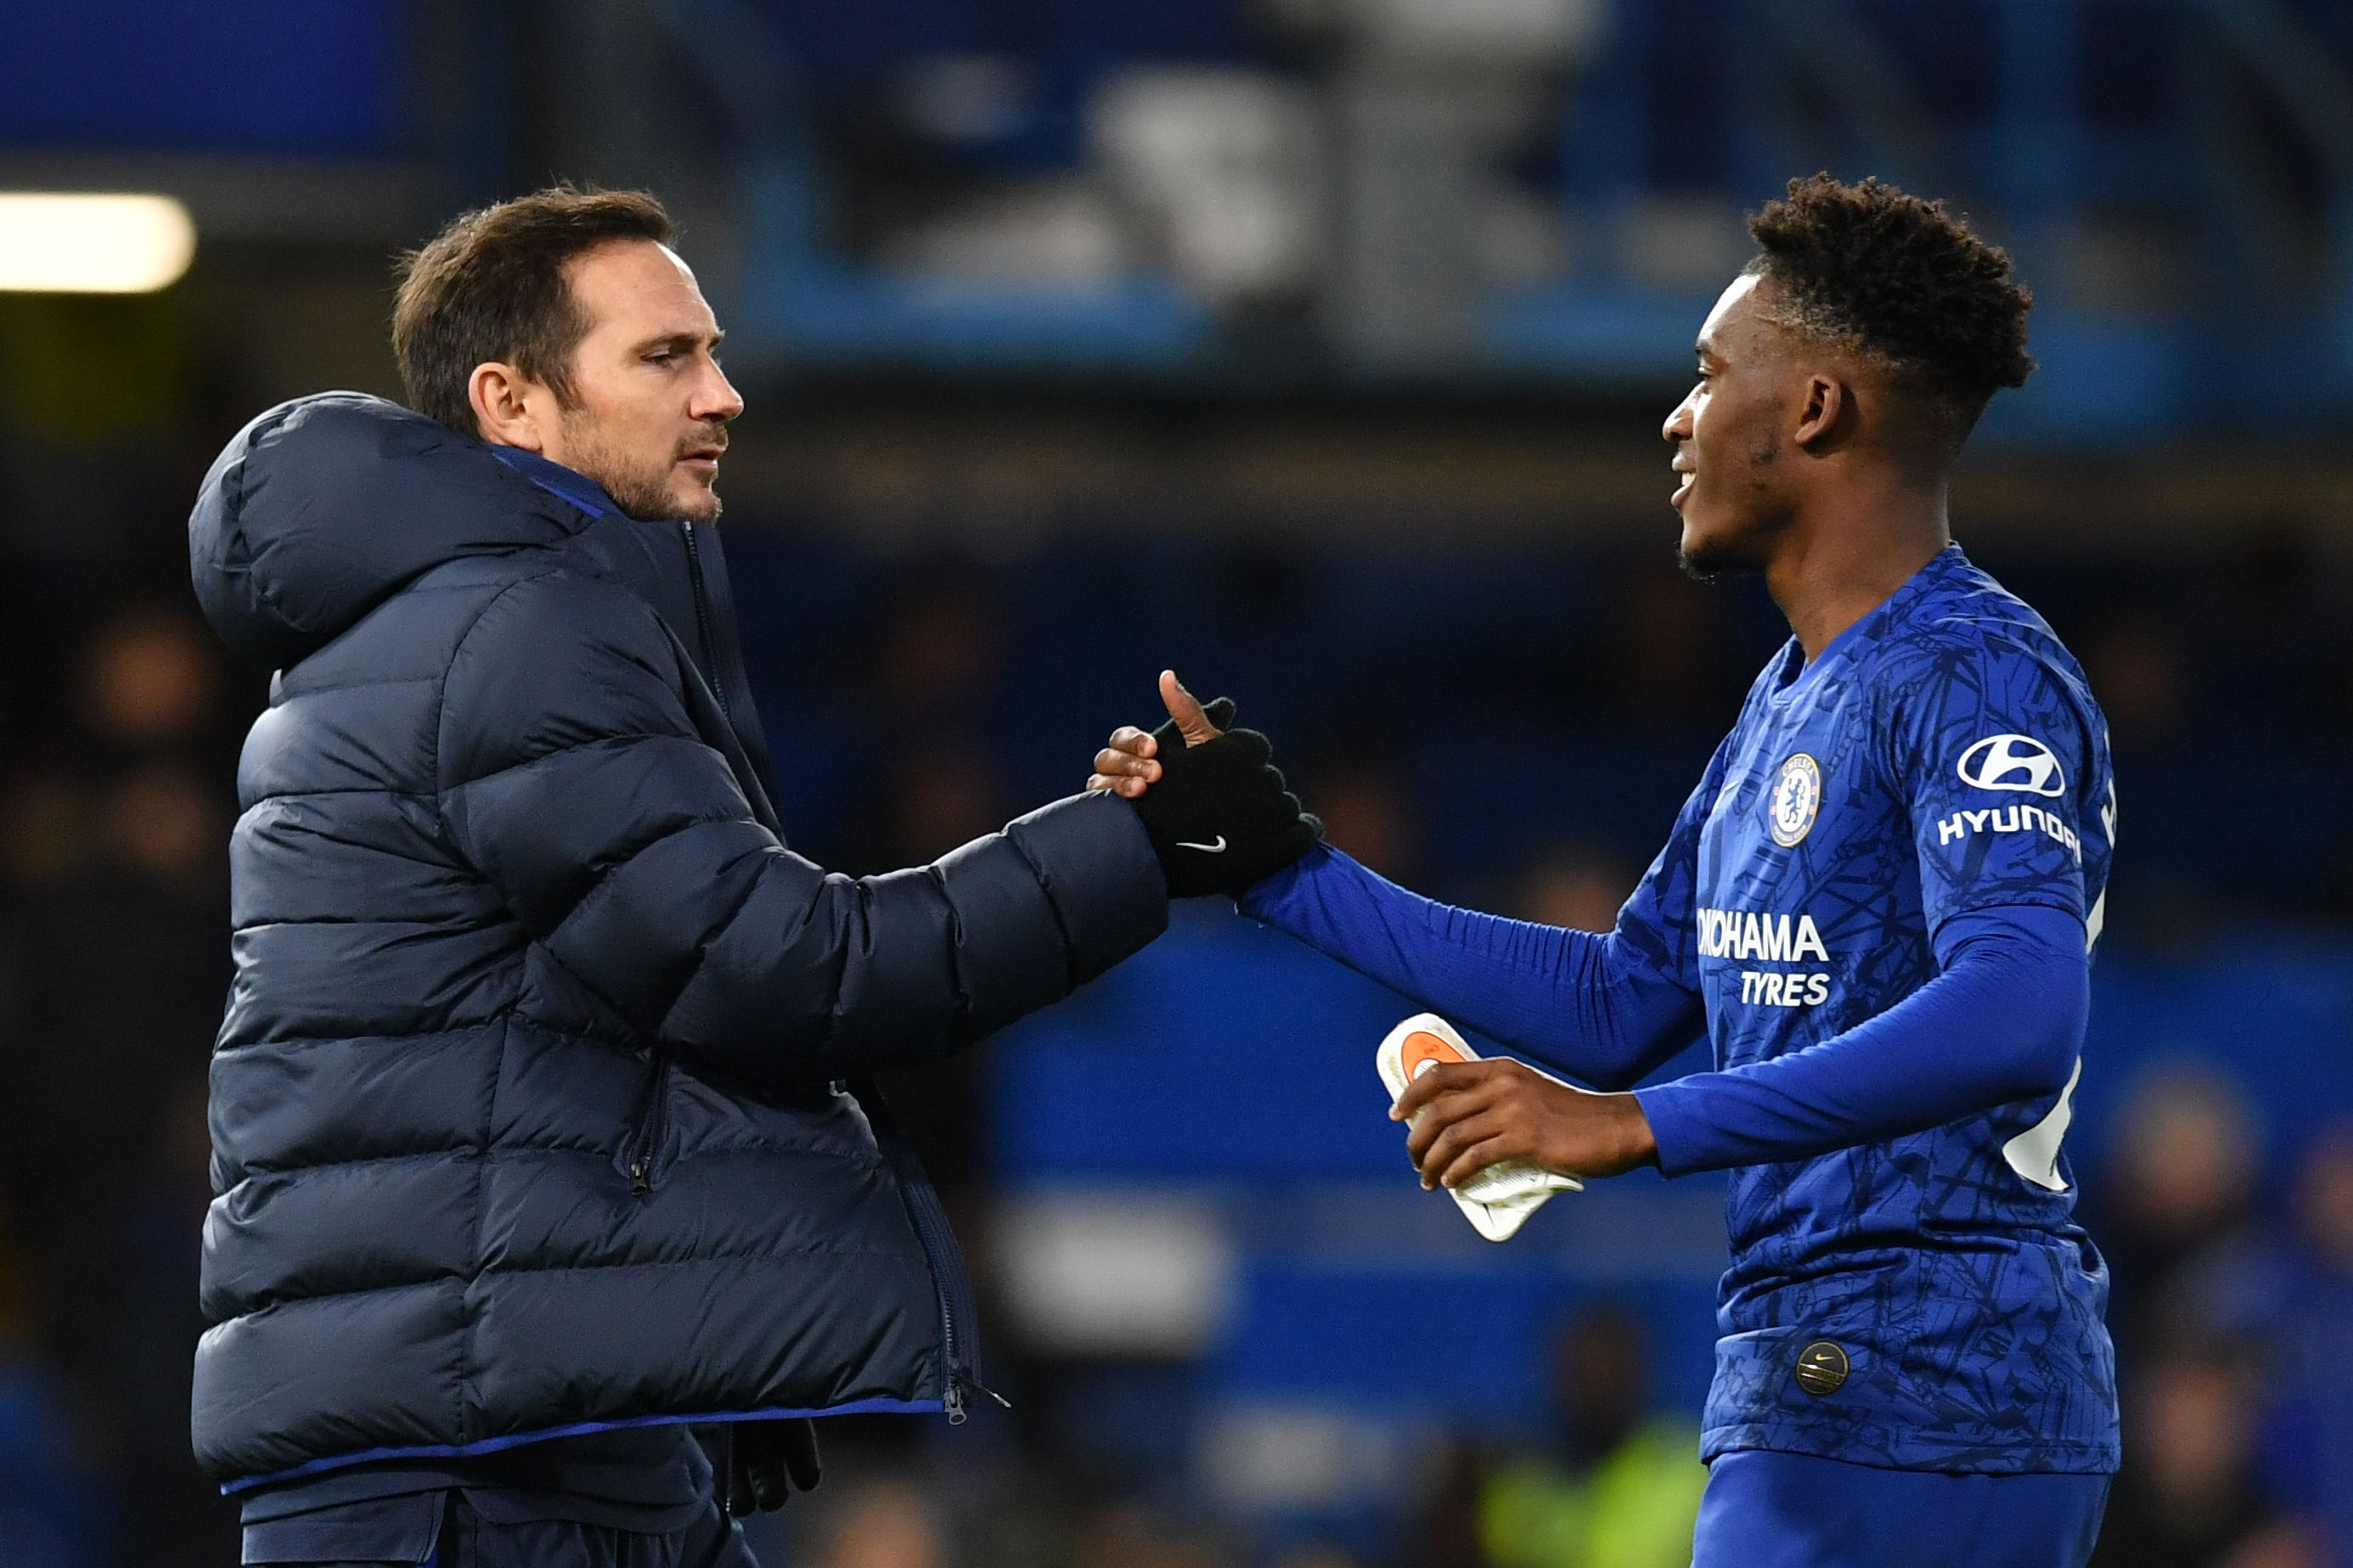 Hudson-Odoi will want to build on his performance against Burnley (Photo by BEN STANSALL/AFP via Getty Images)